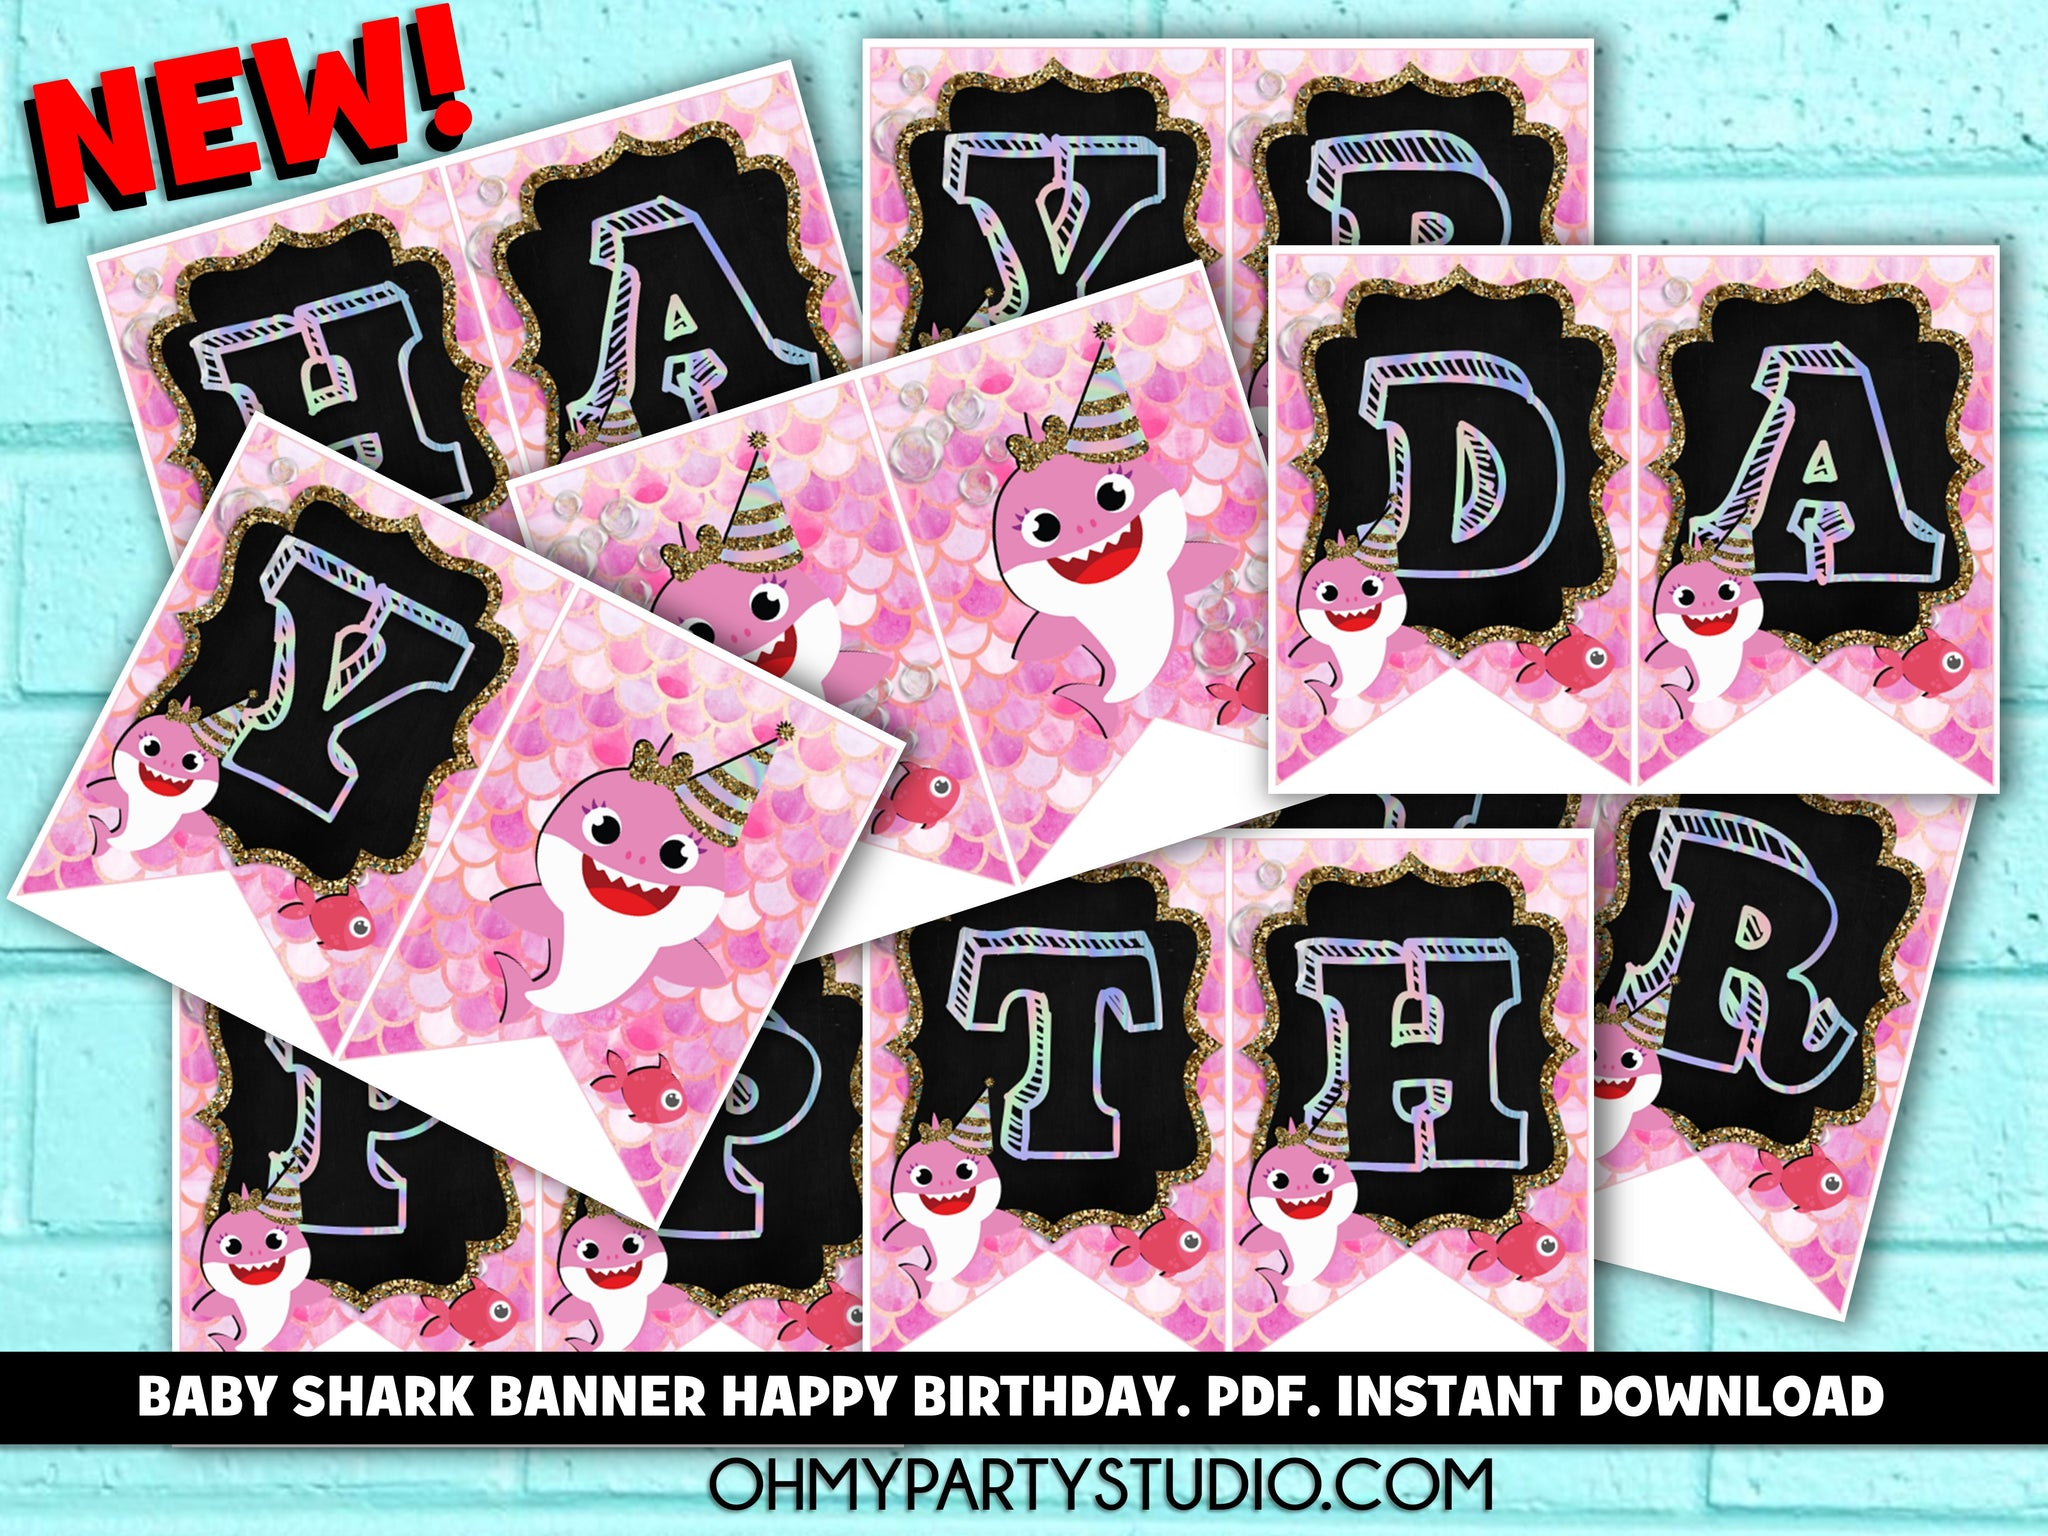 BABY SHARK BANNER INSTANT DOWNLOAD